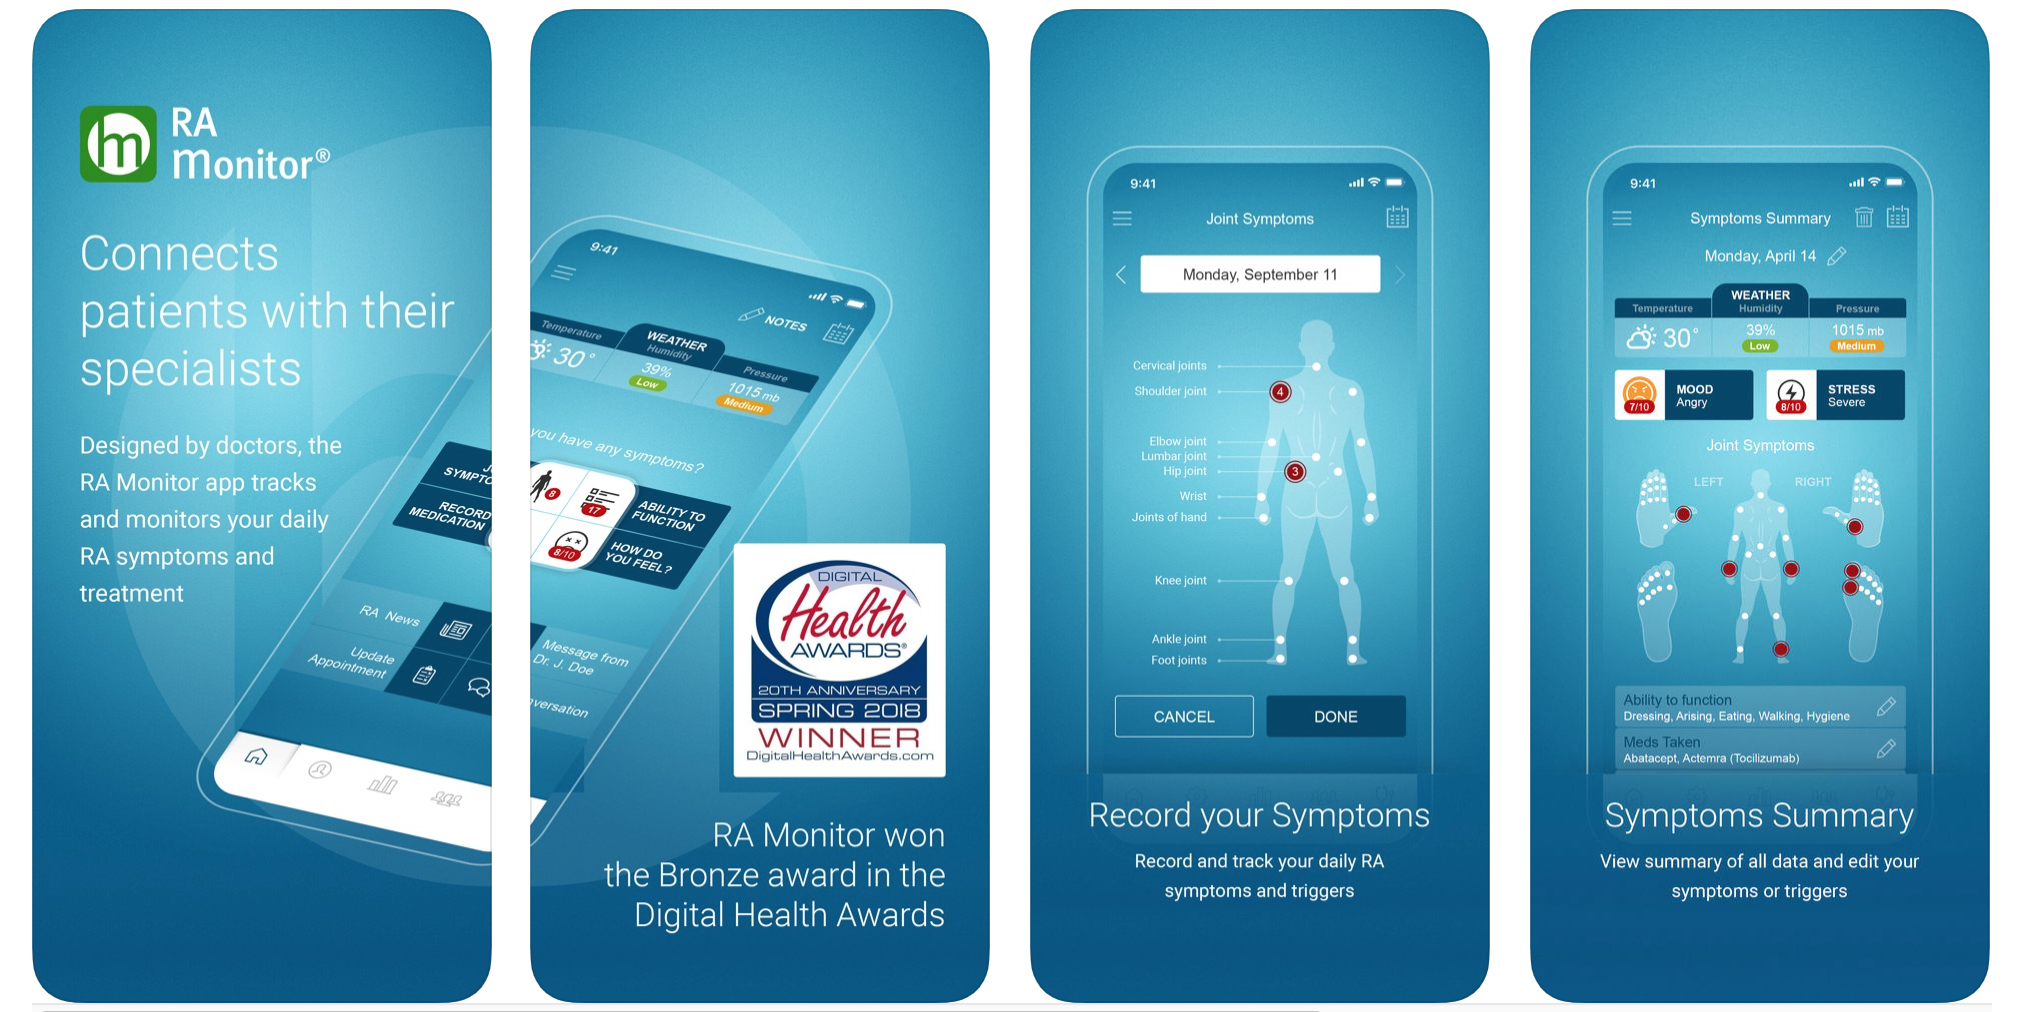 What are the best apps if you have arthritis? | AbilityNet